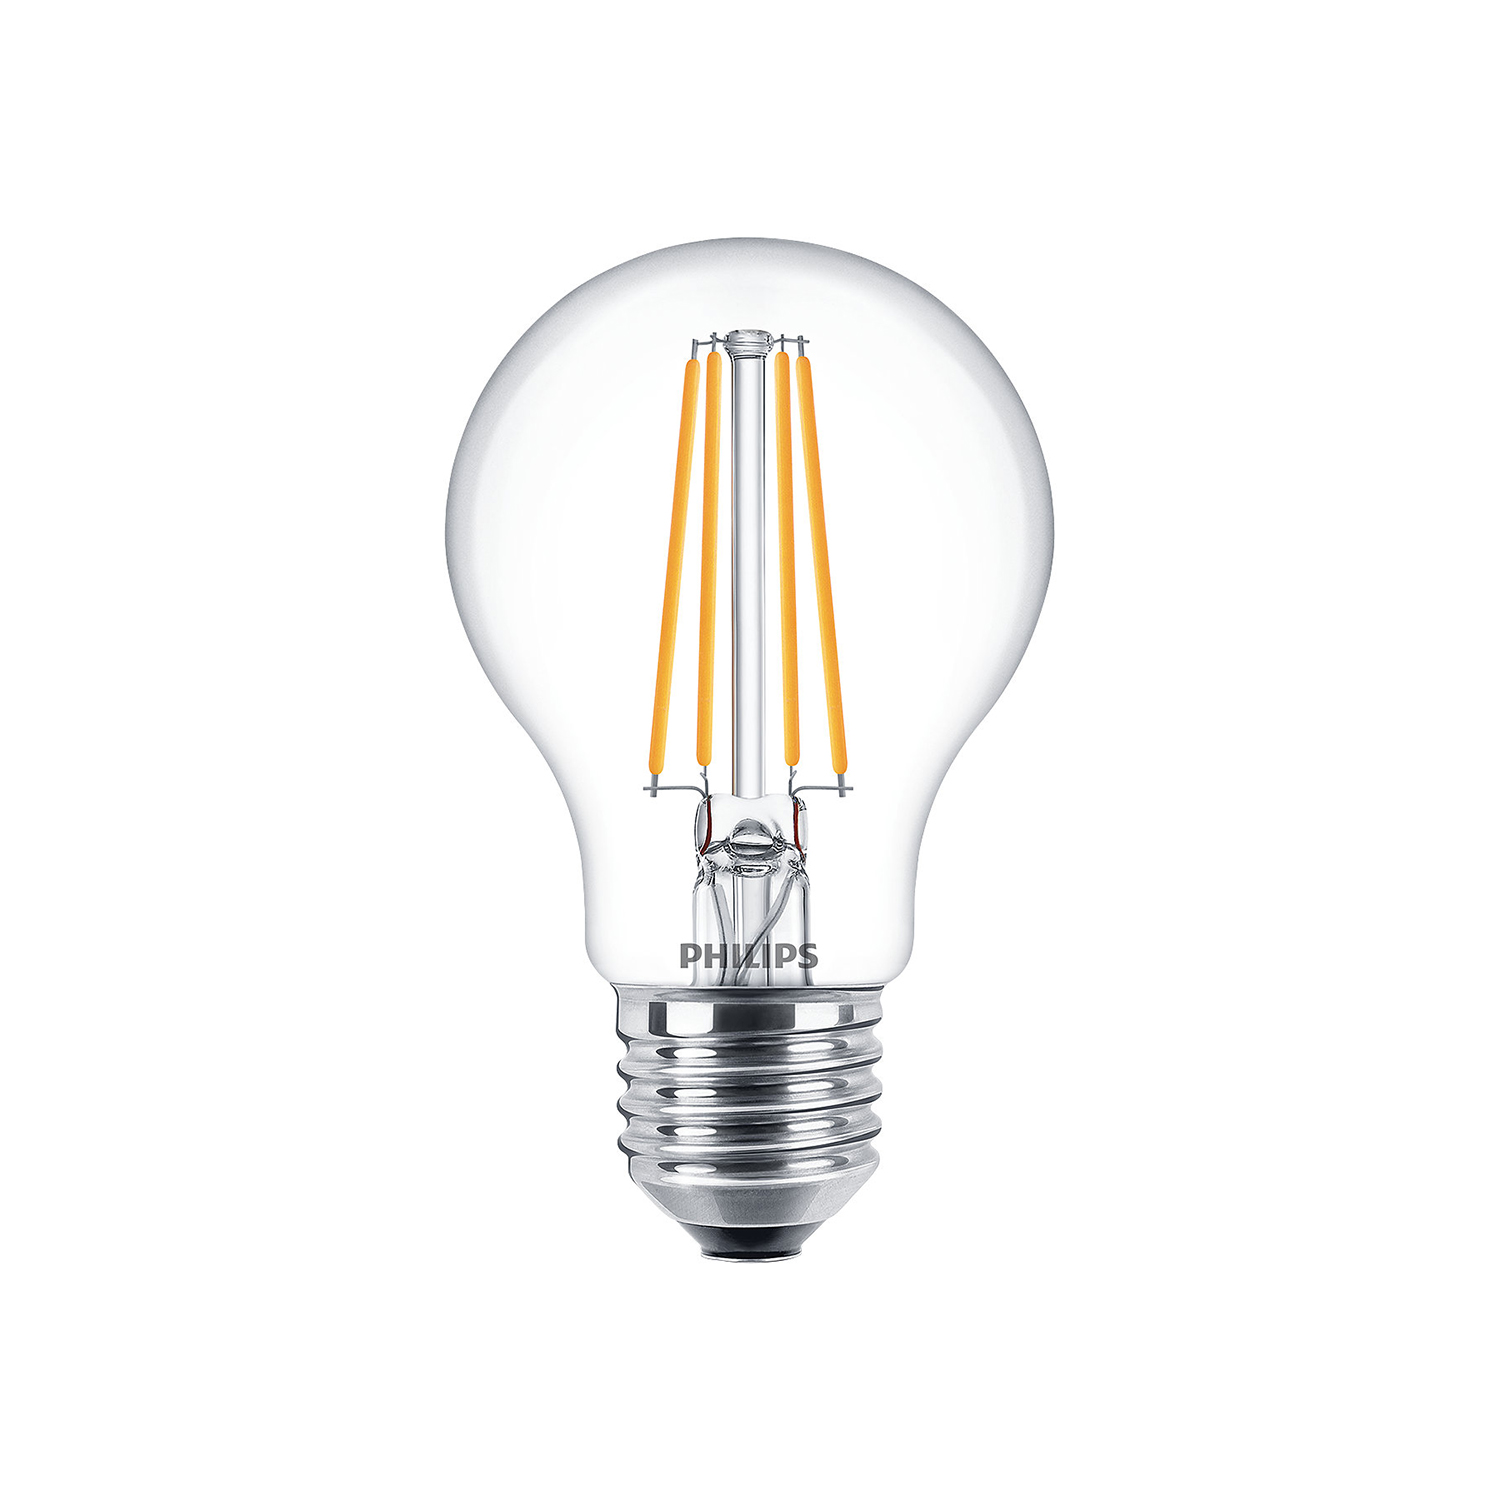 philips led filament bulb clear a60 e27 8w 2700k. Black Bedroom Furniture Sets. Home Design Ideas